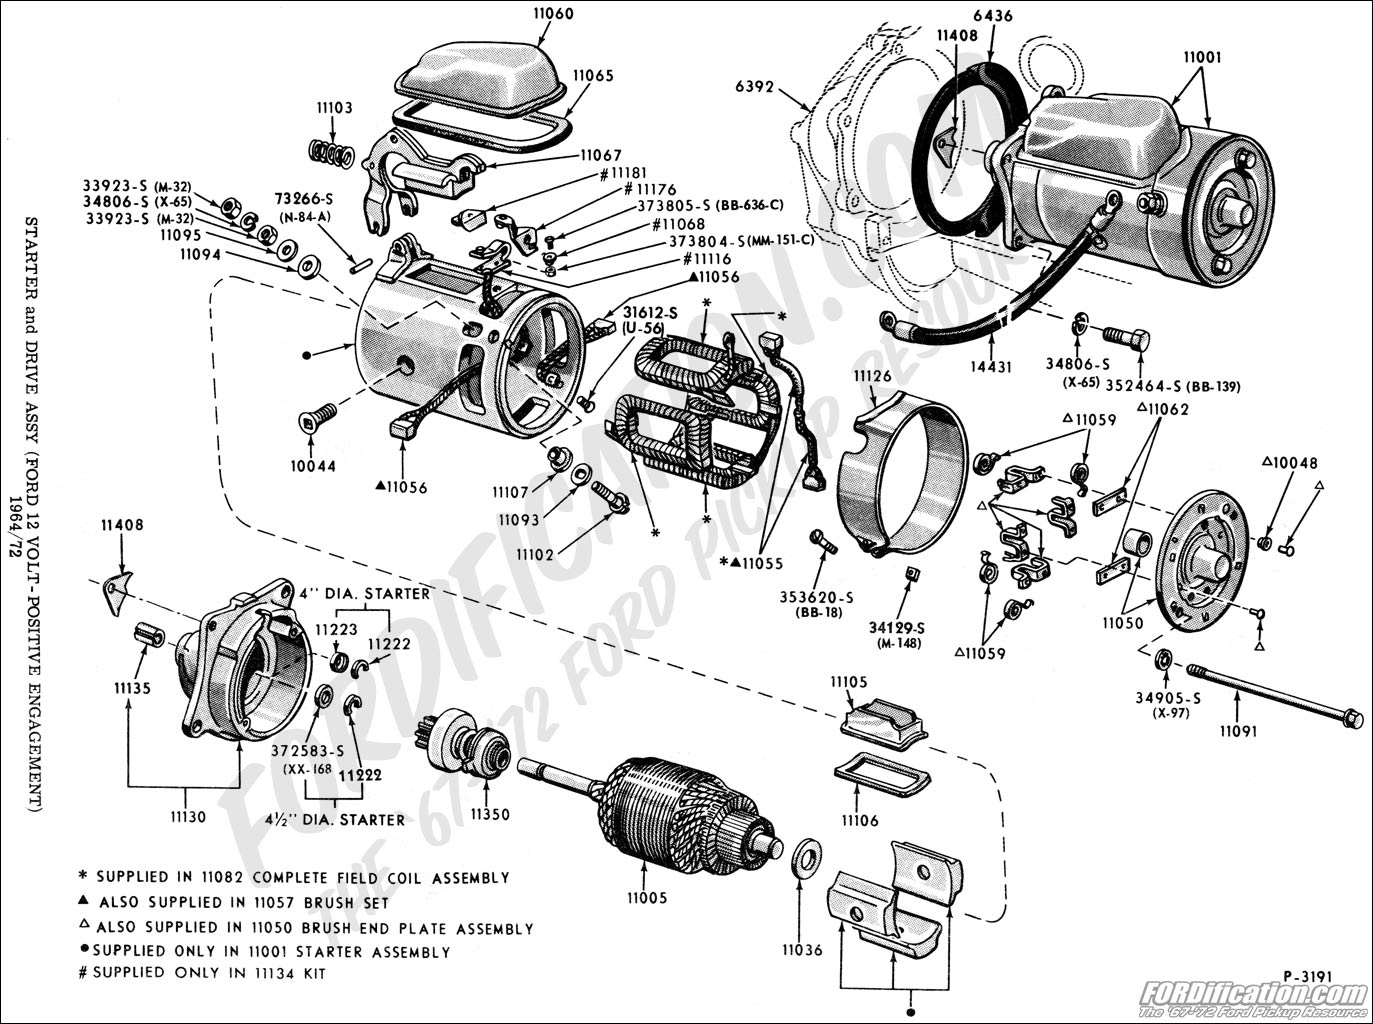 2001 Ford F150 Starter Solenoid Wiring Diagram For Your Needs